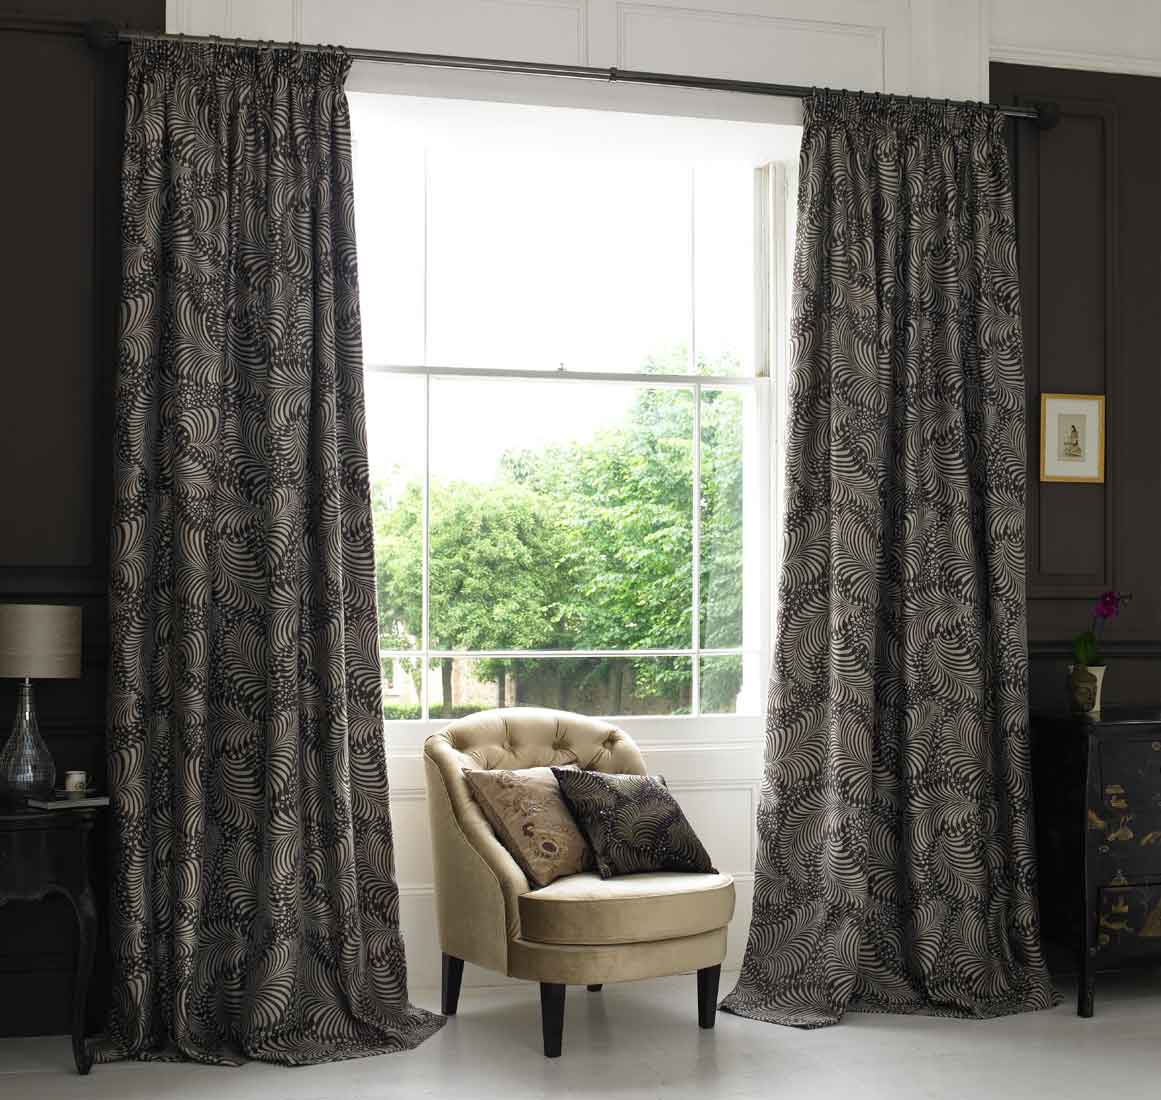 free-living-room-curtains-designs